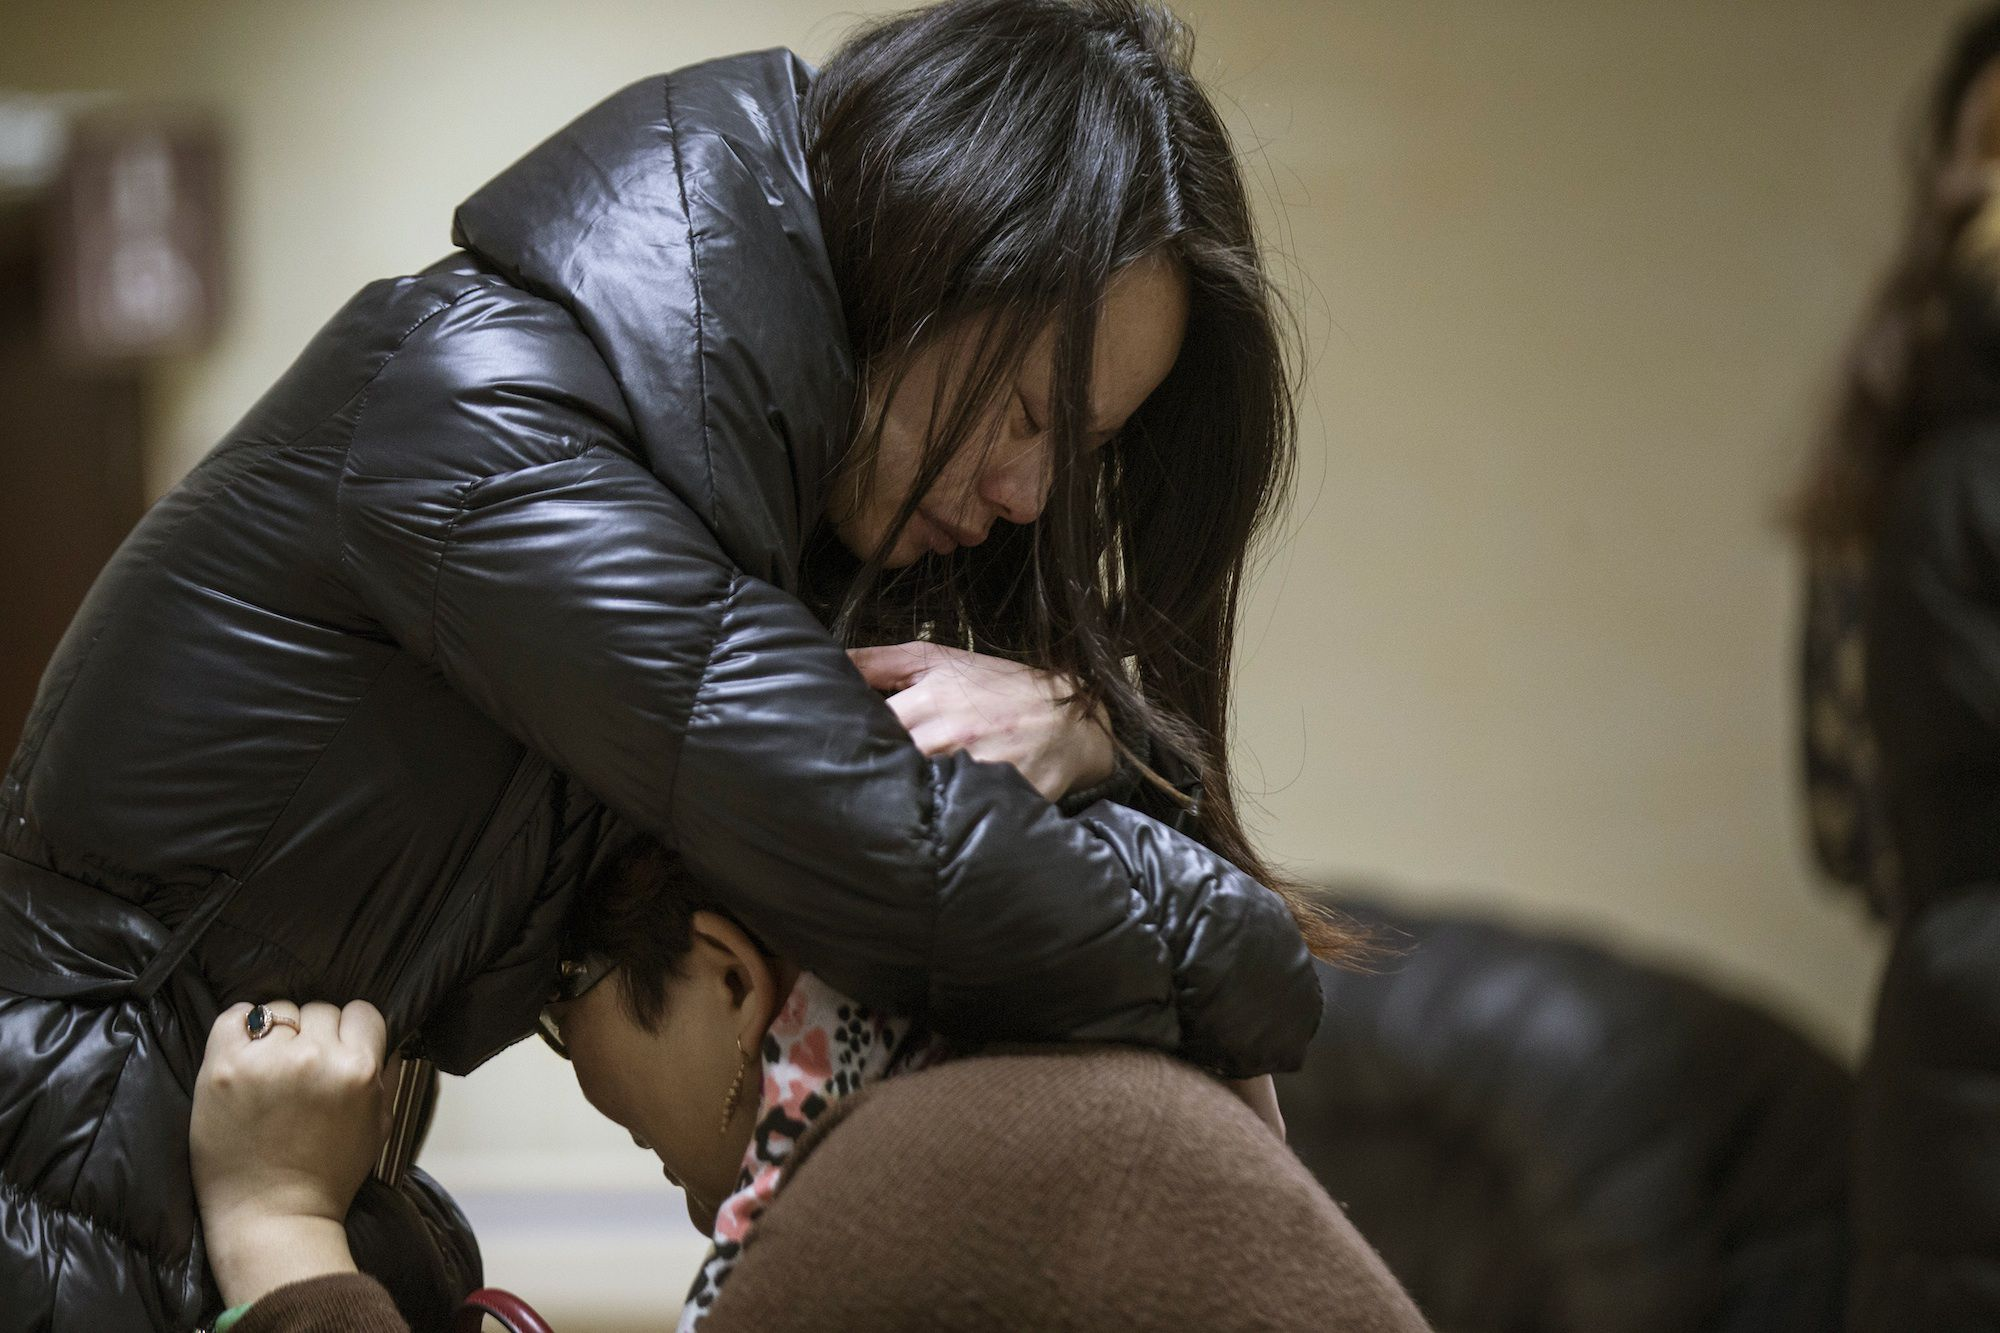 Relatives of a victim hug as they wait at a hospital where injured people of a stampede incident are treated.